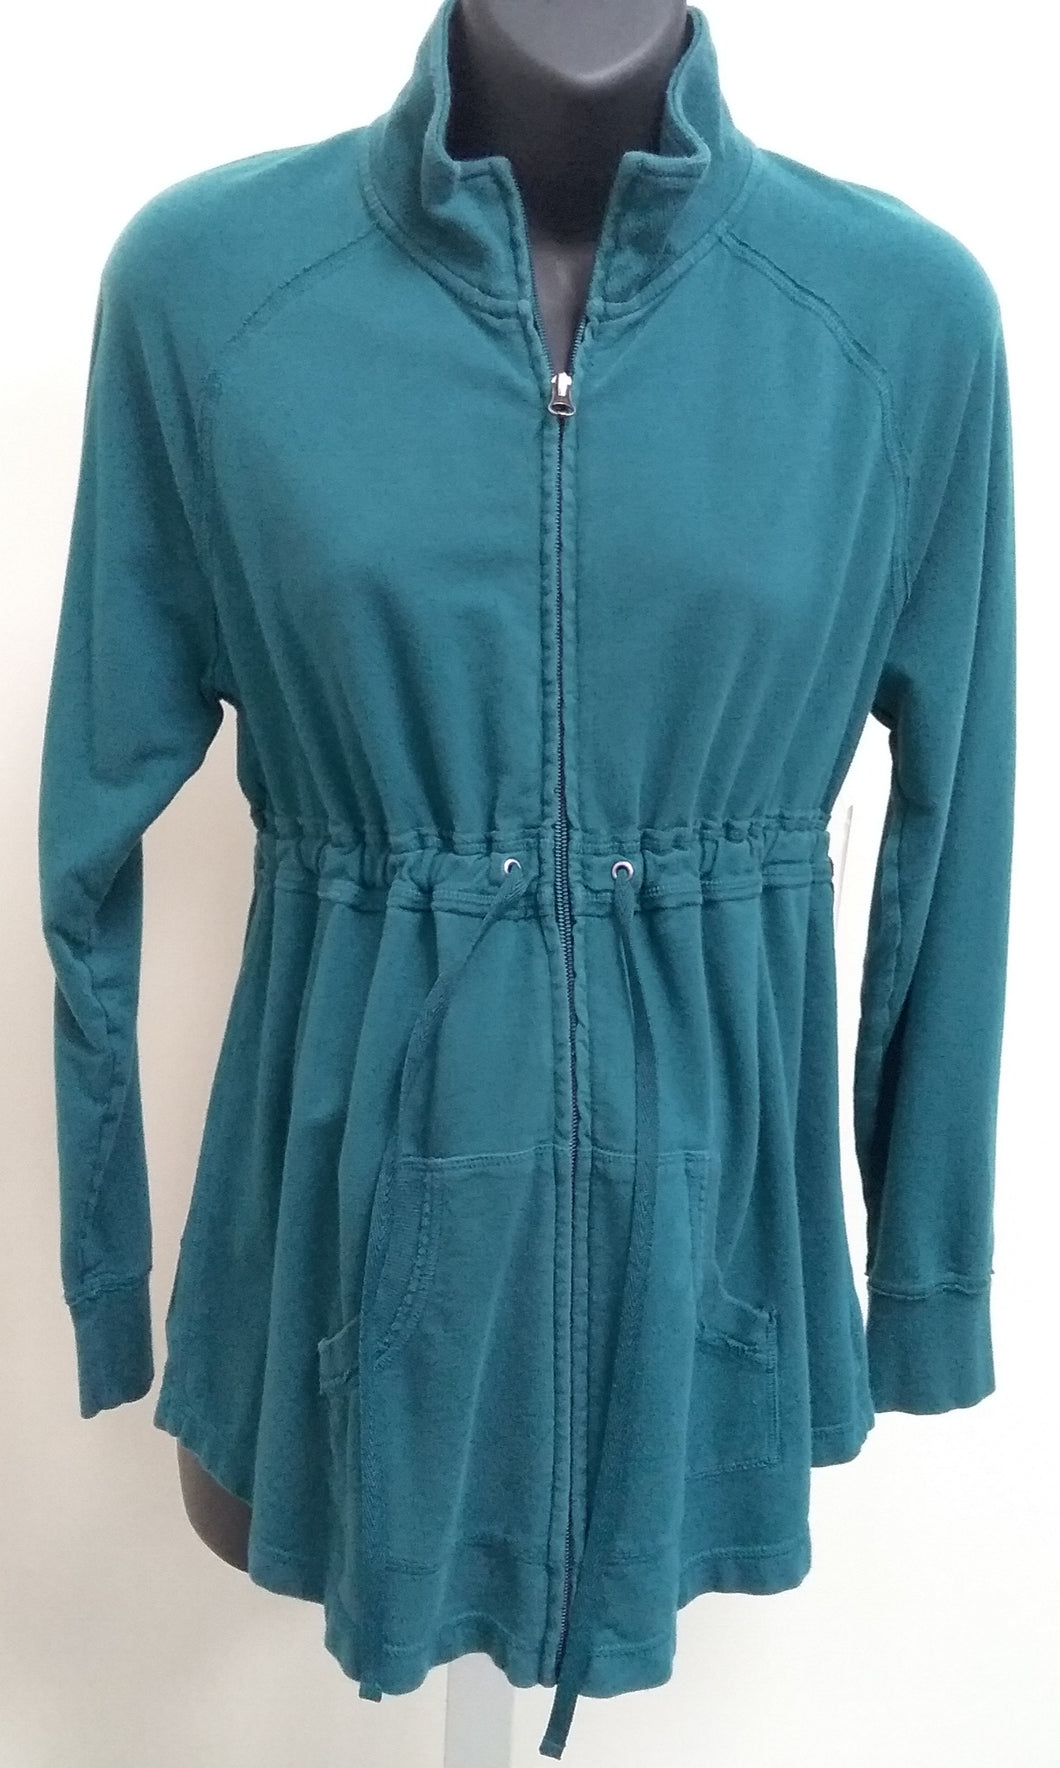 Large Teal Green Zip Up Jacket